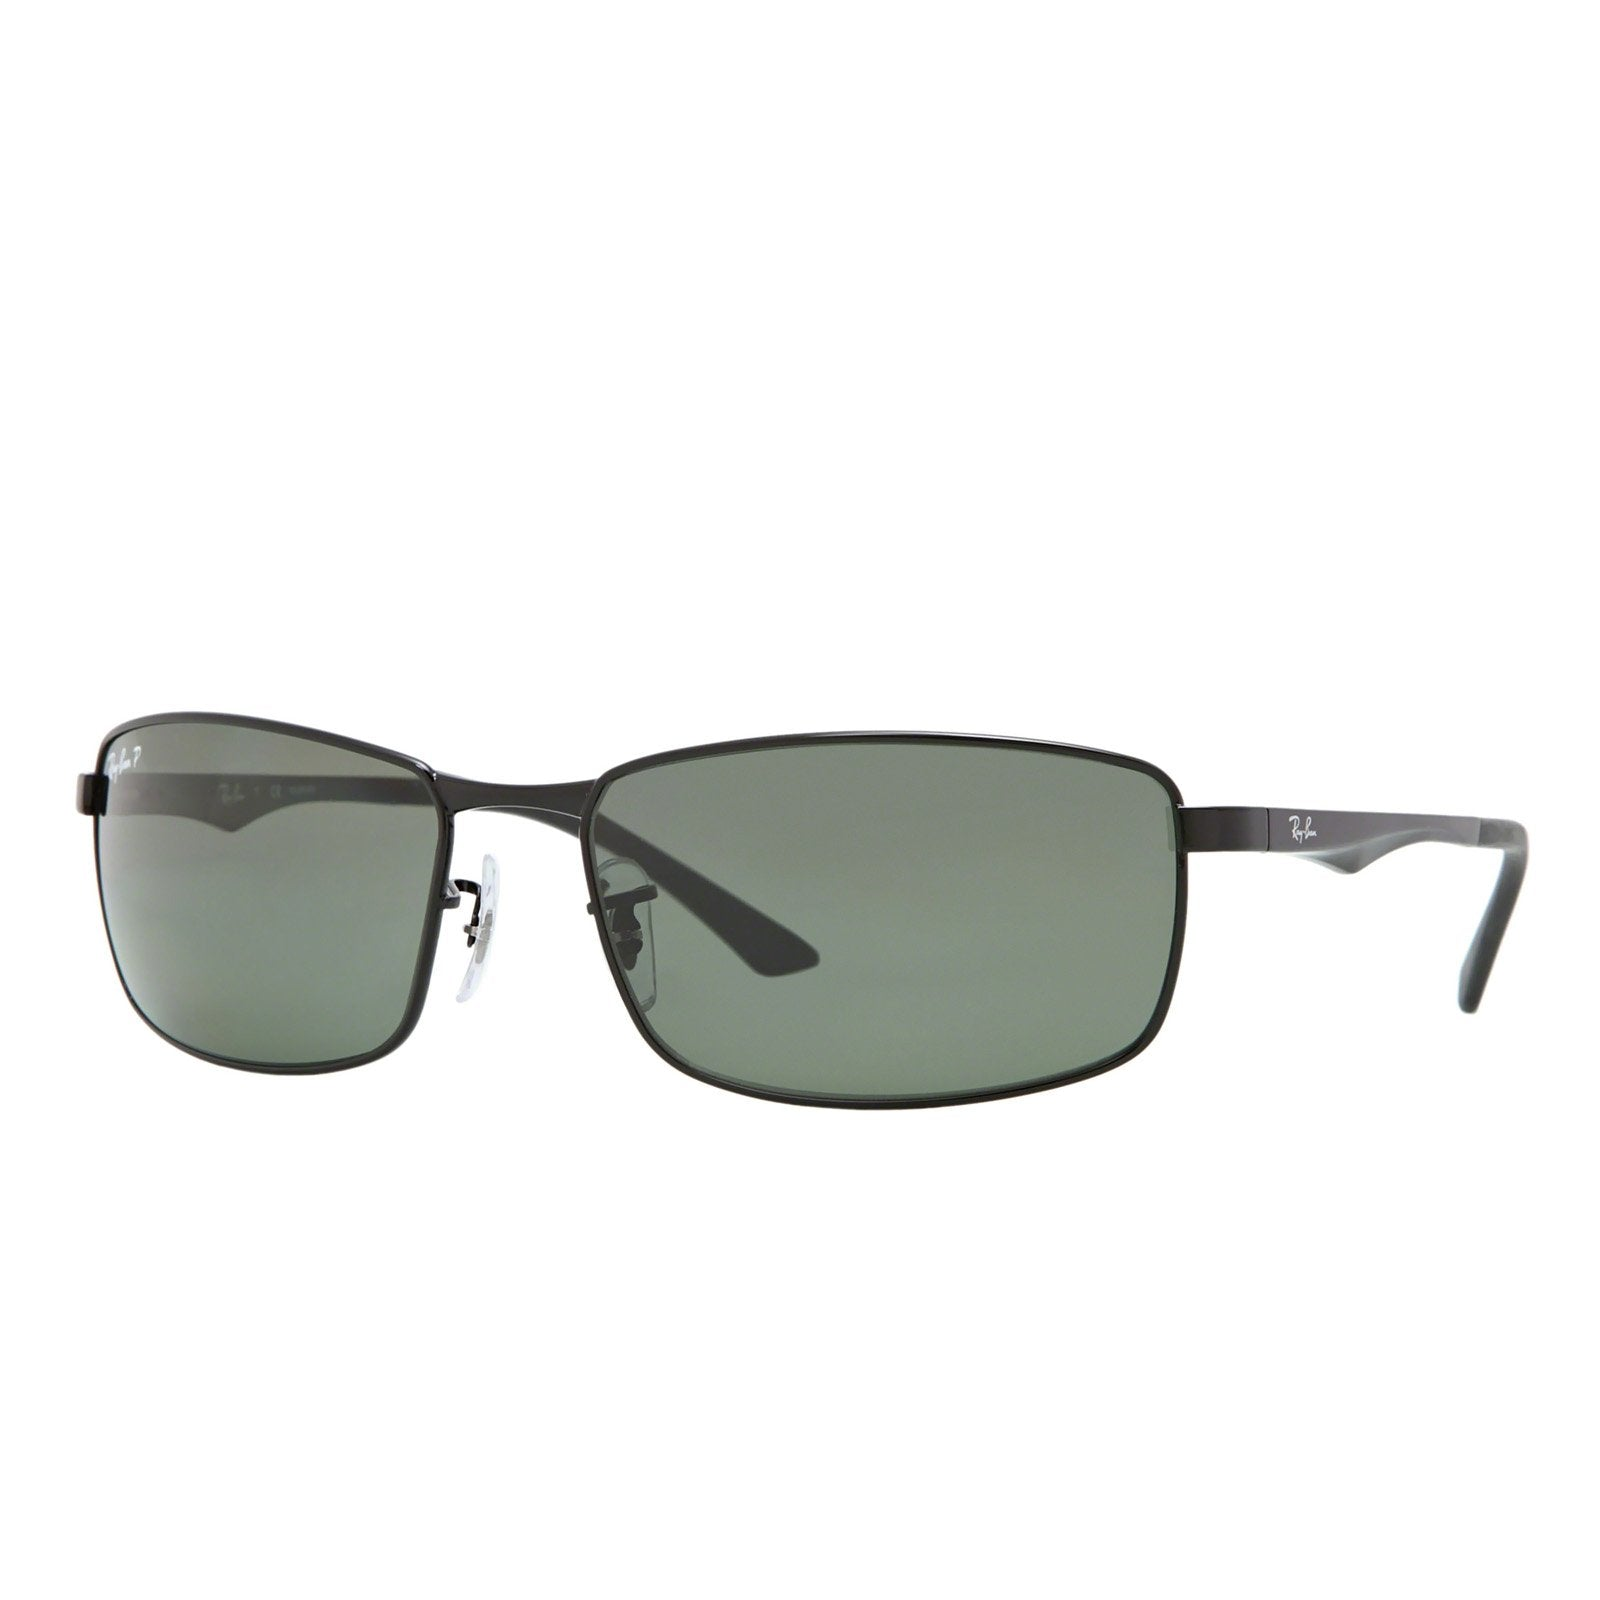 Ray-Ban RB3498 002/9A Sunglasses